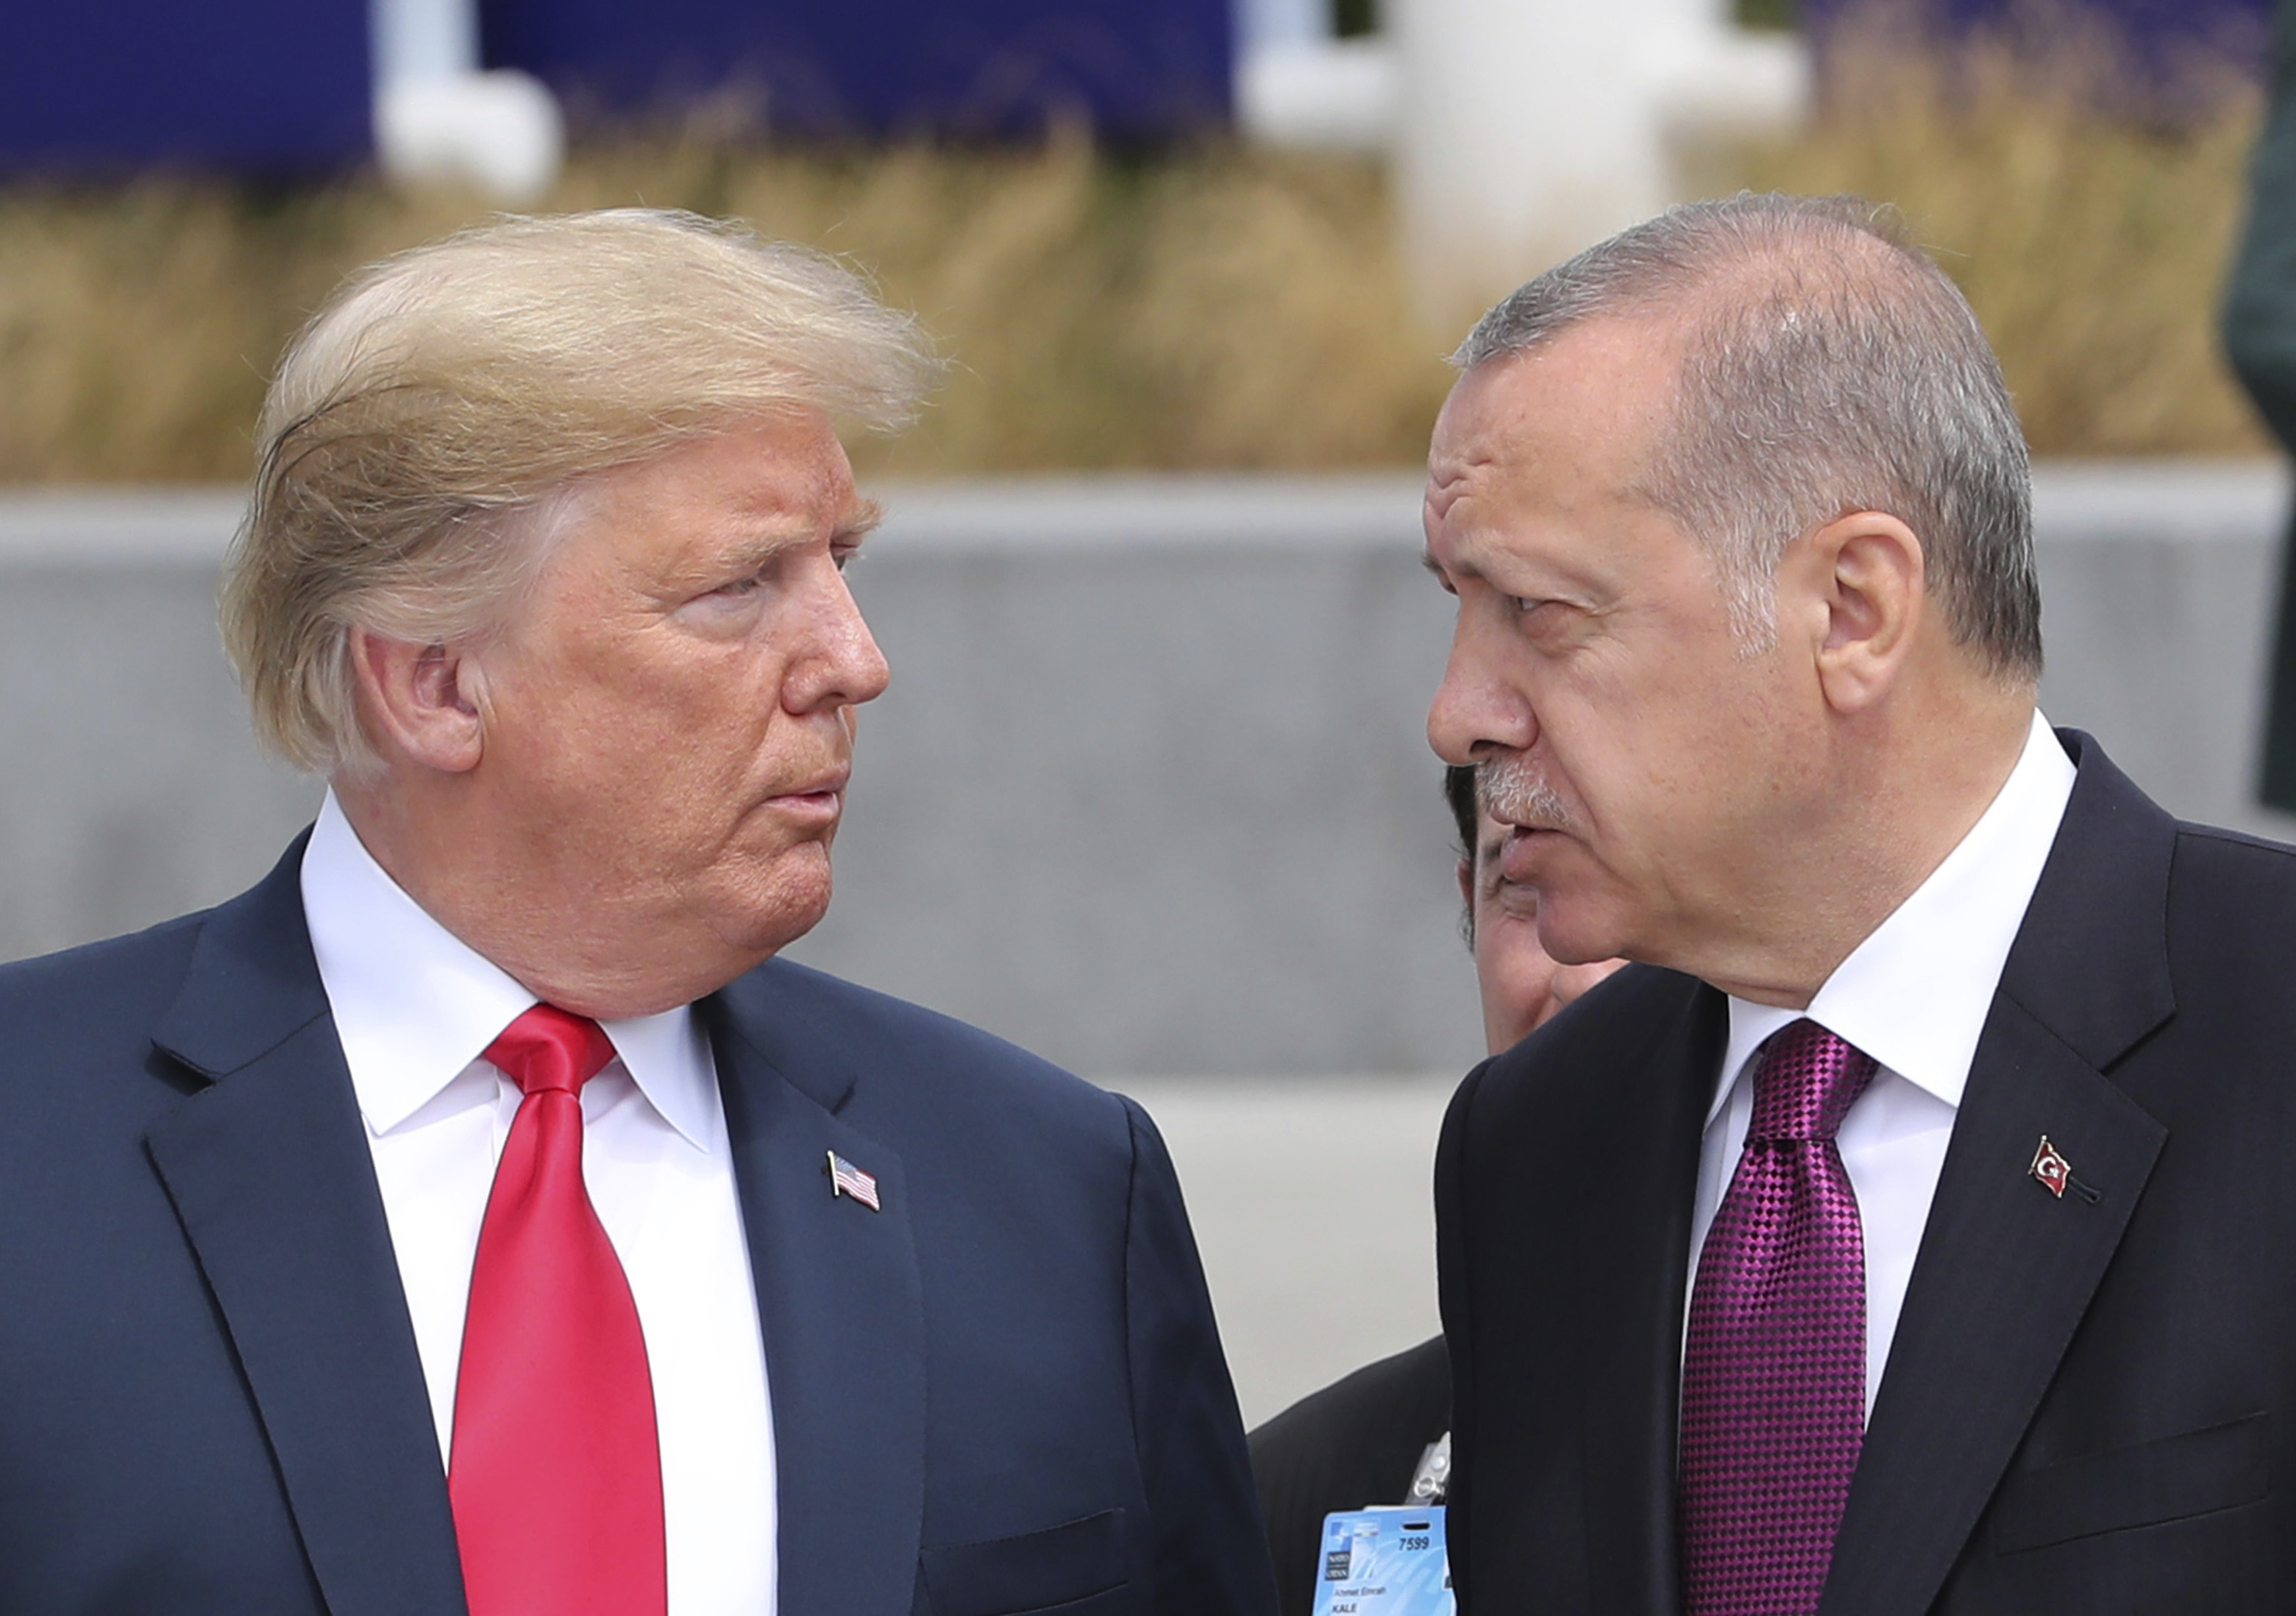 Trump's G-20 meeting with Turkey's Erdogan over Russian missiles could spark break with NATO ally